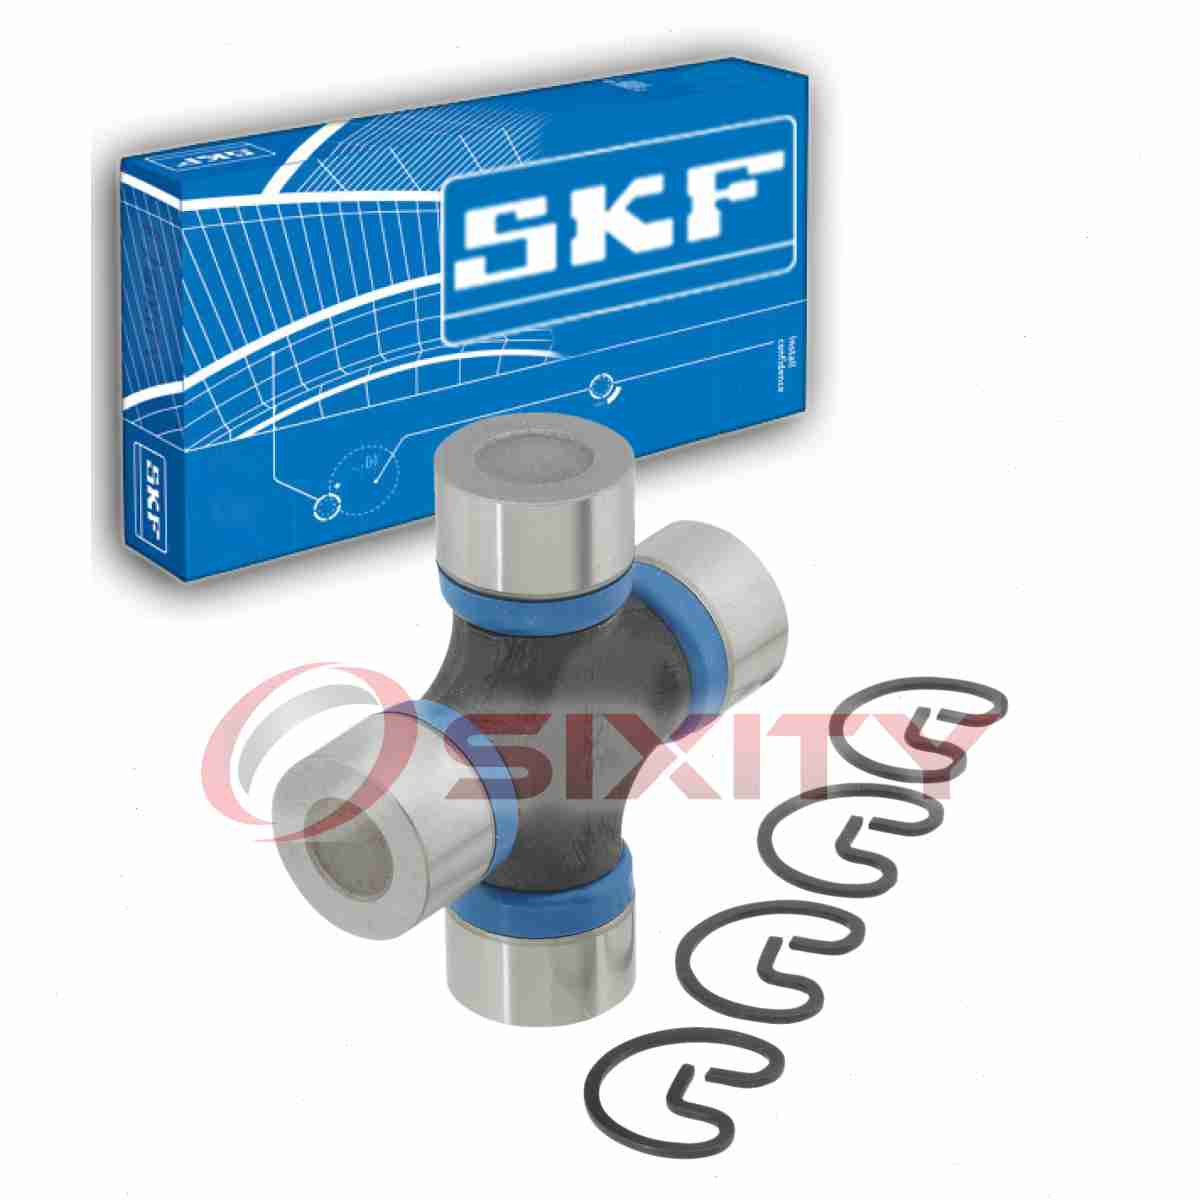 SKF Rear Universal Joint for 1997-2017 Ford F-150 U-Joint UJoint mv